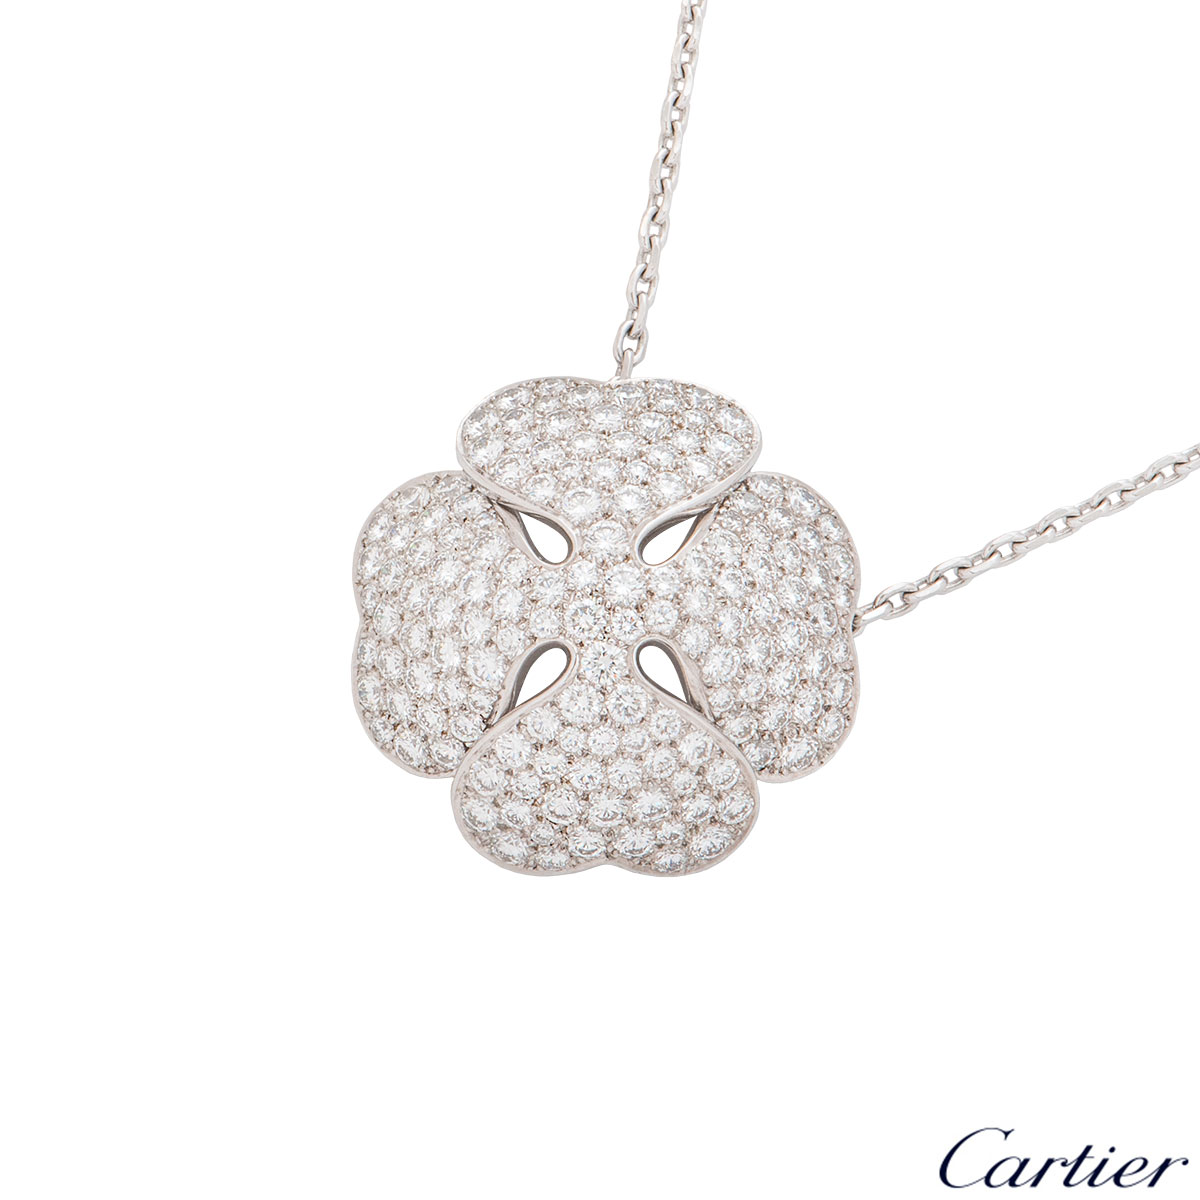 Cartier White Gold Diamond Clover 2001 Necklace